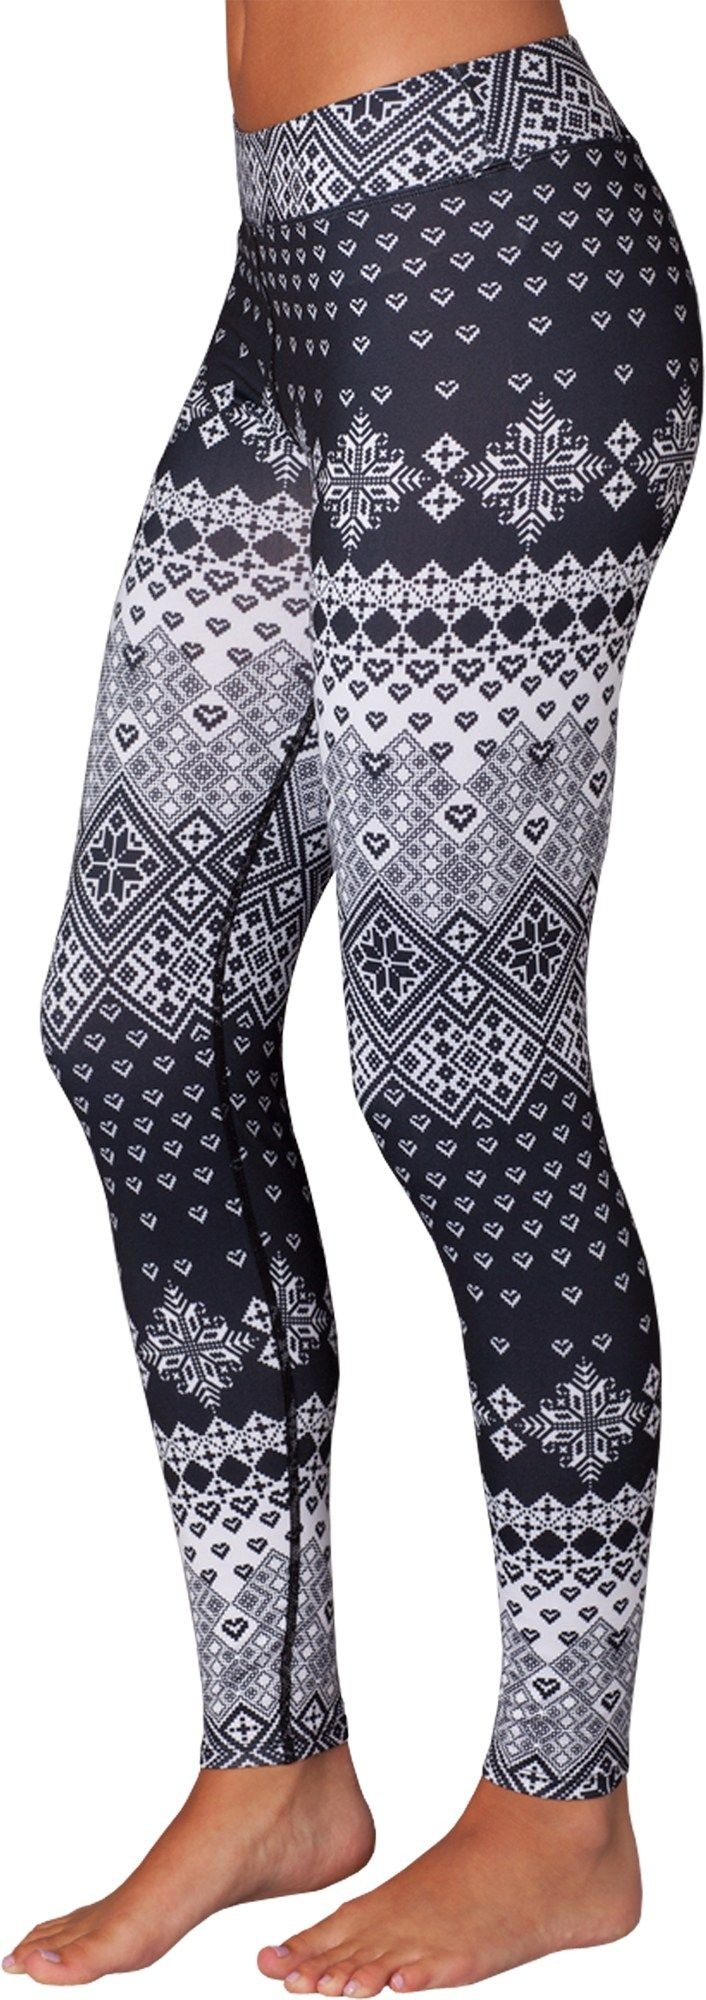 17 Best ideas about Long Underwear on Pinterest | Great white ...